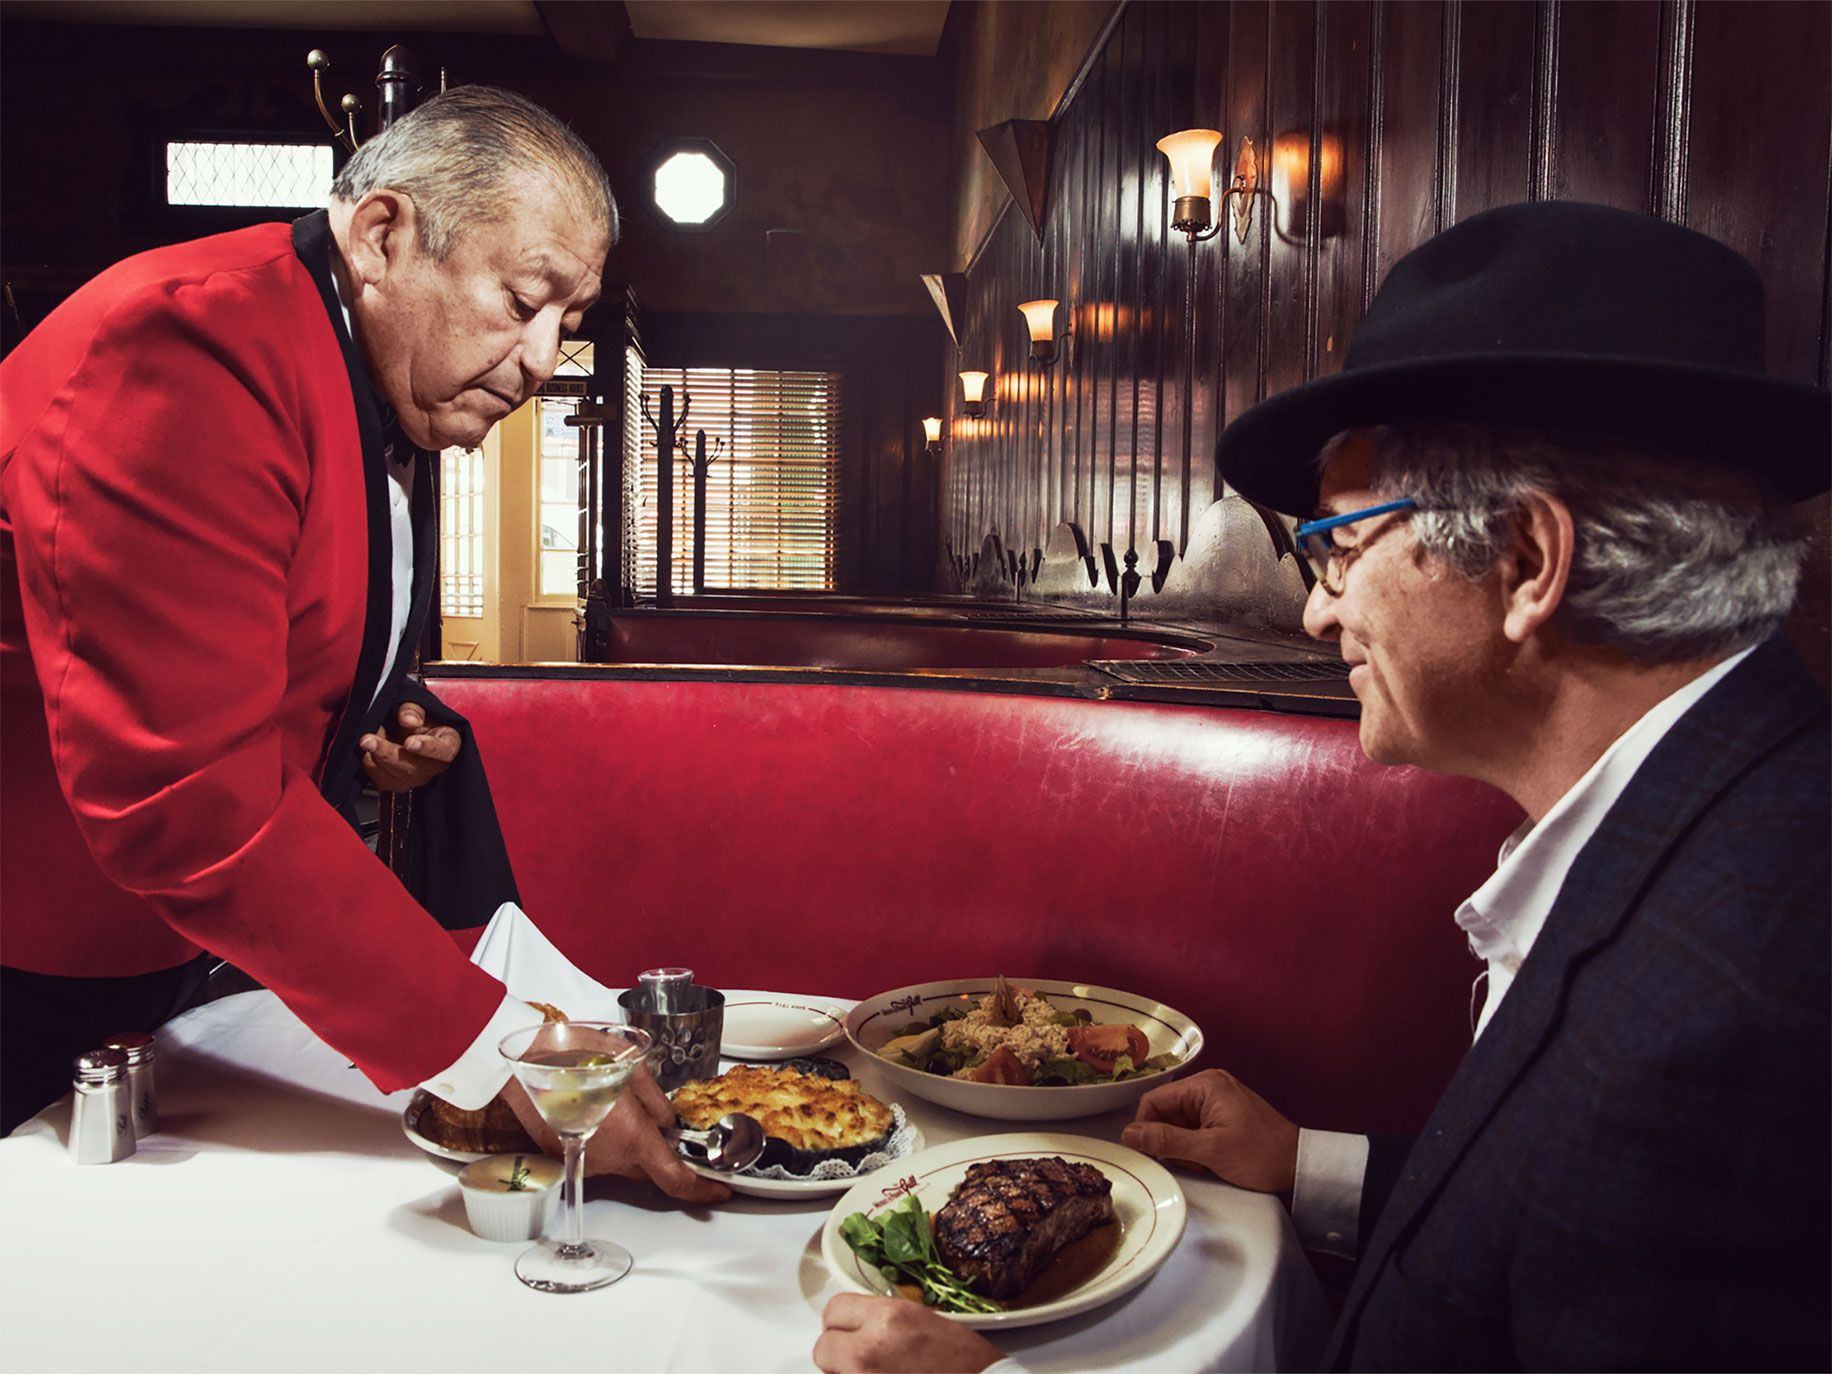 Sergio Gonzales, one of the longest-tenured servers at Musso's before his death in June of 2019, delivers truffled mac and cheese, crab Louie, and grilled New York steak to a hungry Anniversarist.